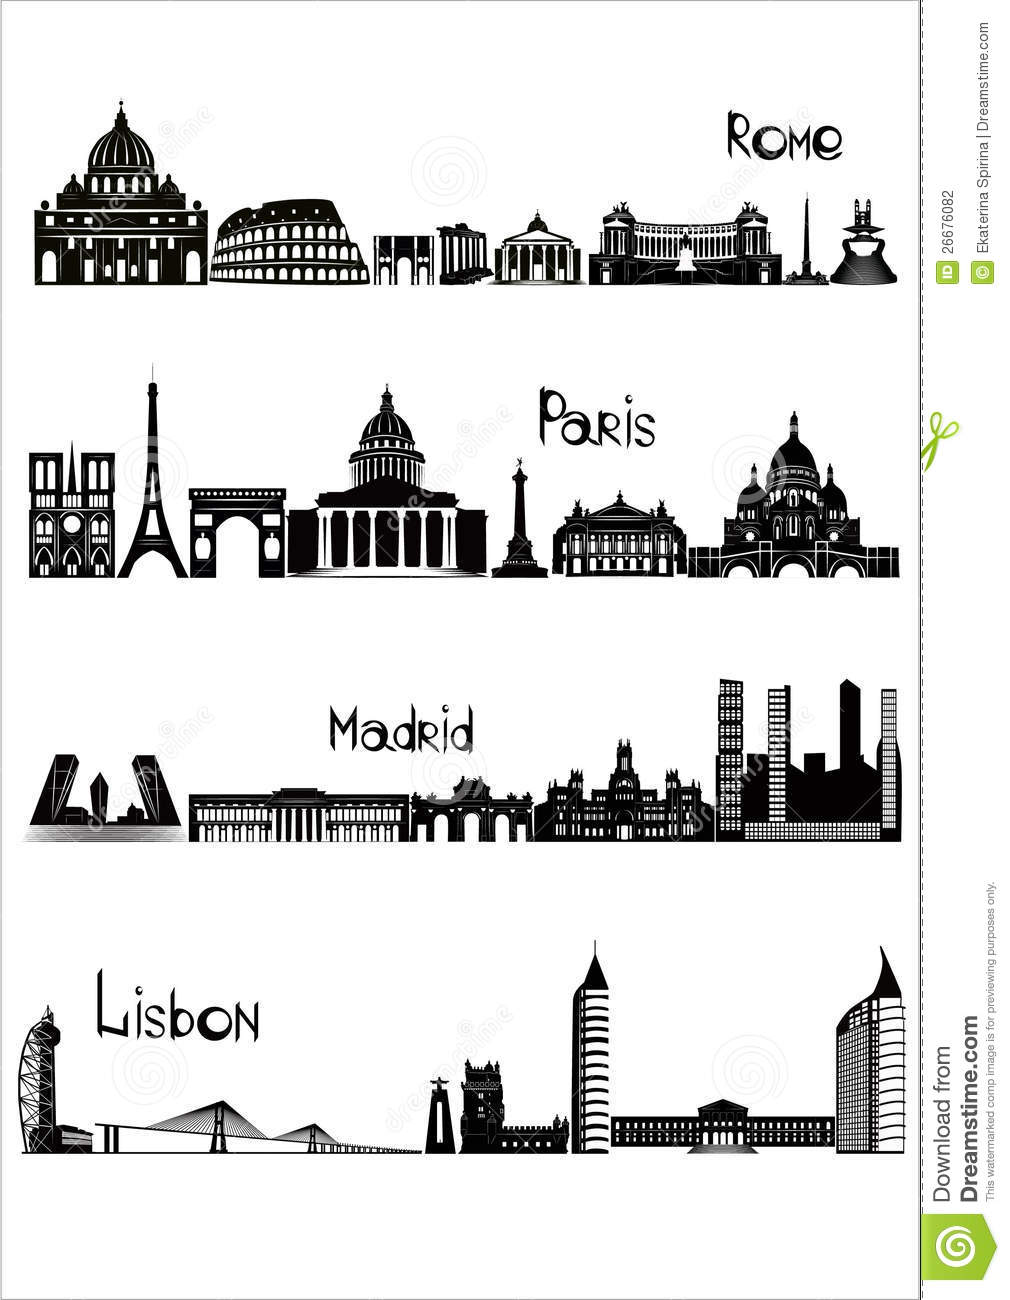 Sights Of Rome, Paris, Madrid And Lisbon, B.